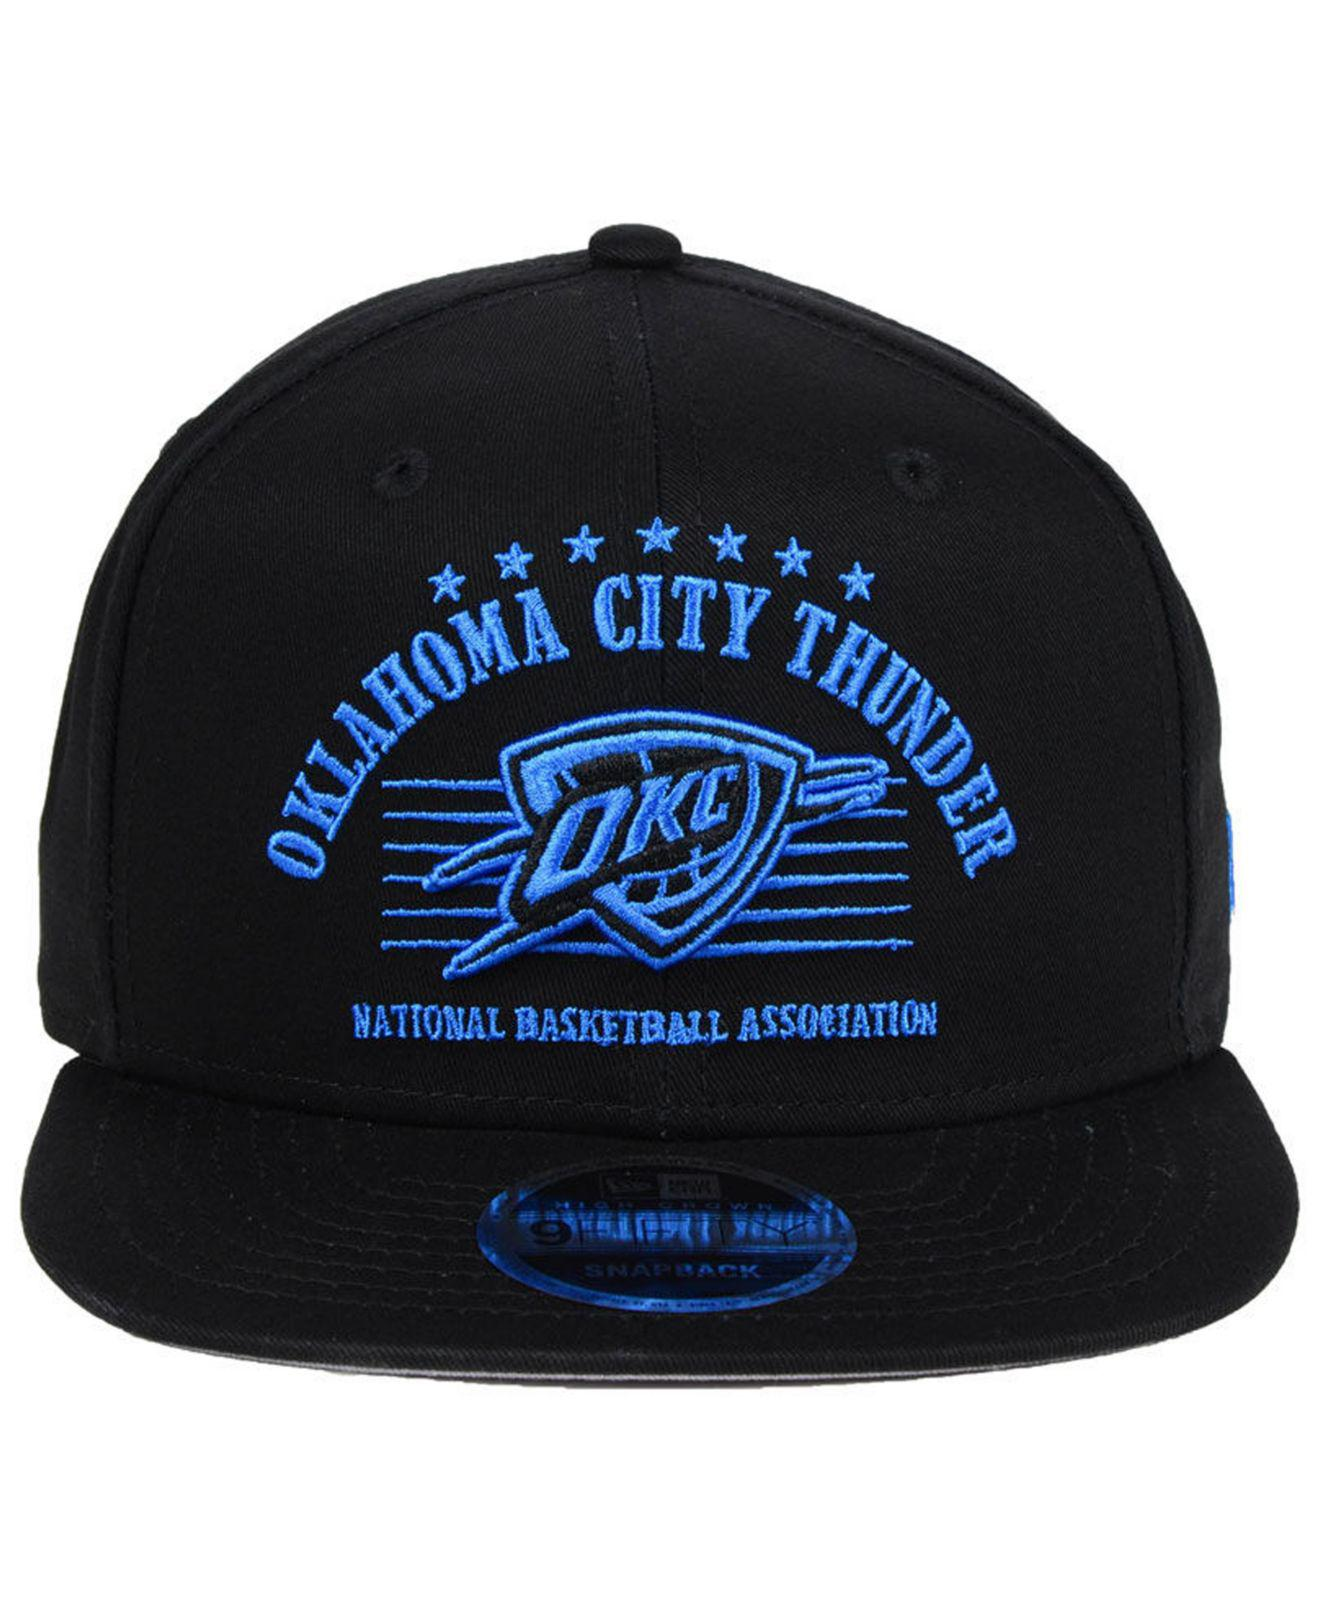 premium selection 92ecf 42708 ... authentic lyst ktz oklahoma city thunder retro arch 9fifty snapback cap  in black for men 35b4f